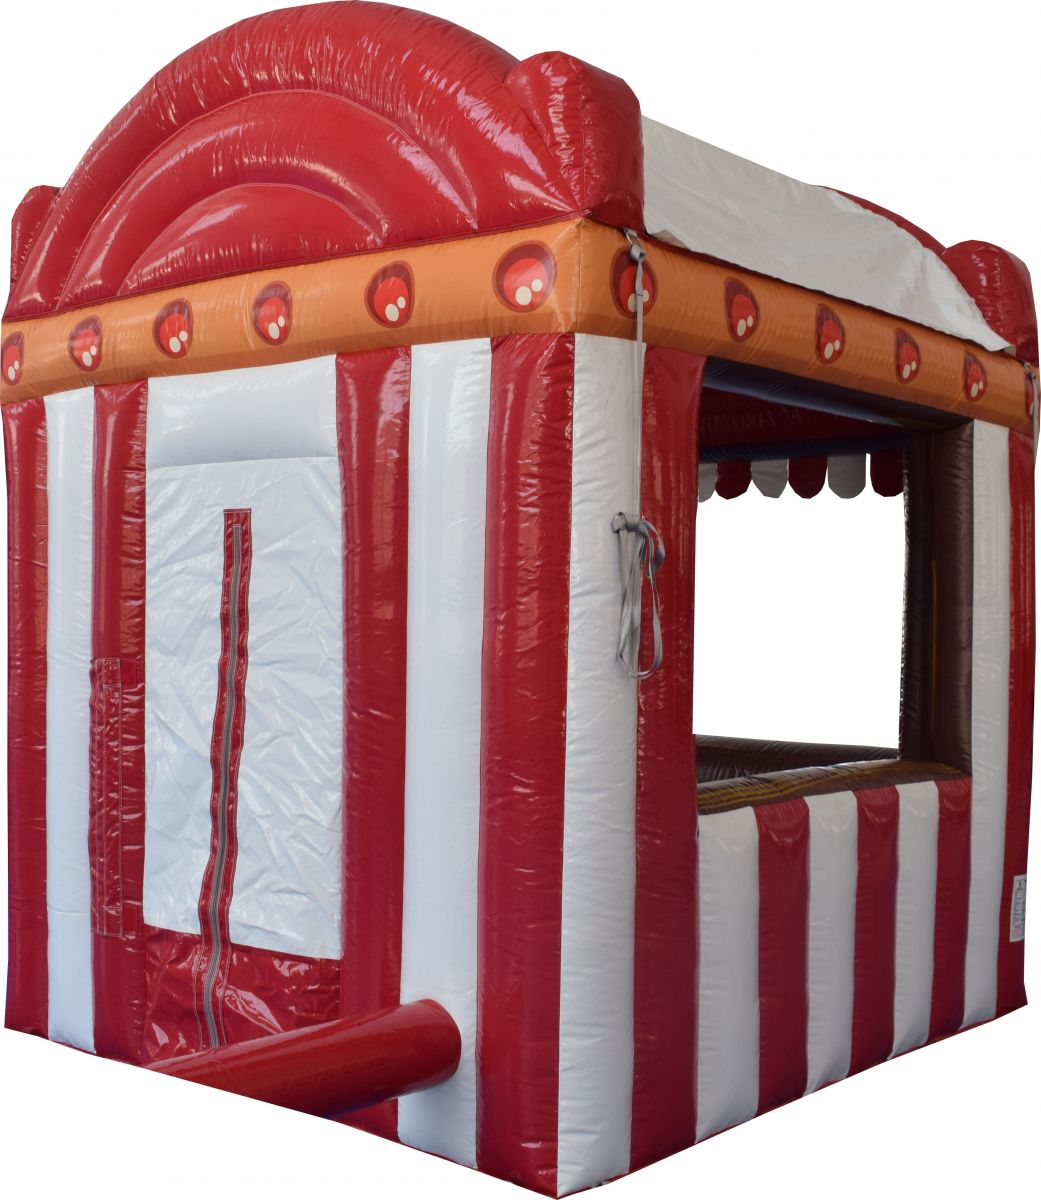 Inflatable Carnival Concession Booth Rental Chicago Illinois